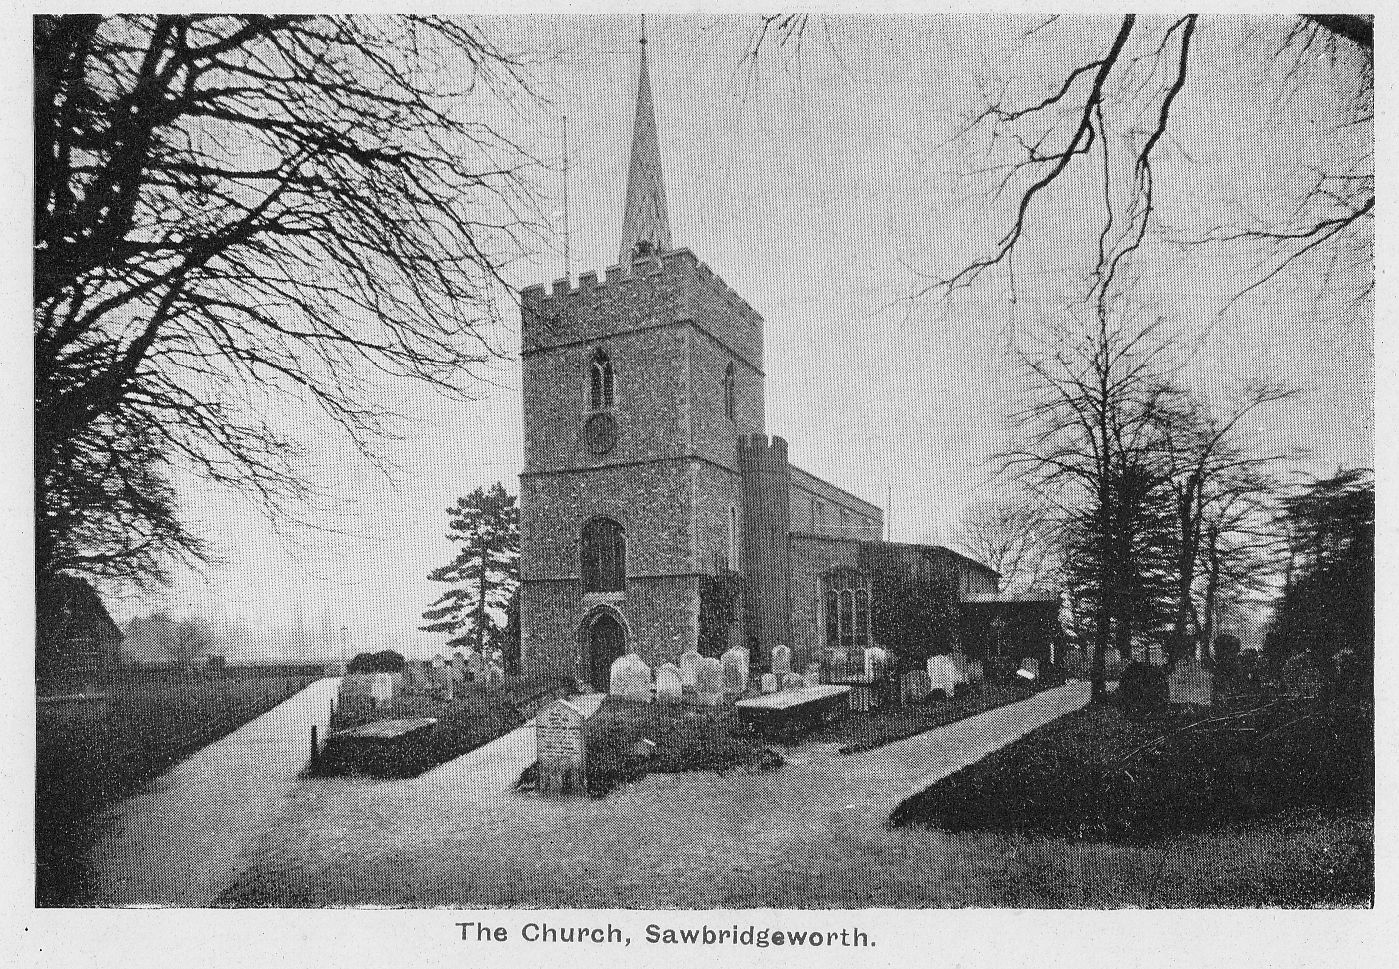 1922 or so Truswell ER SBW The Church